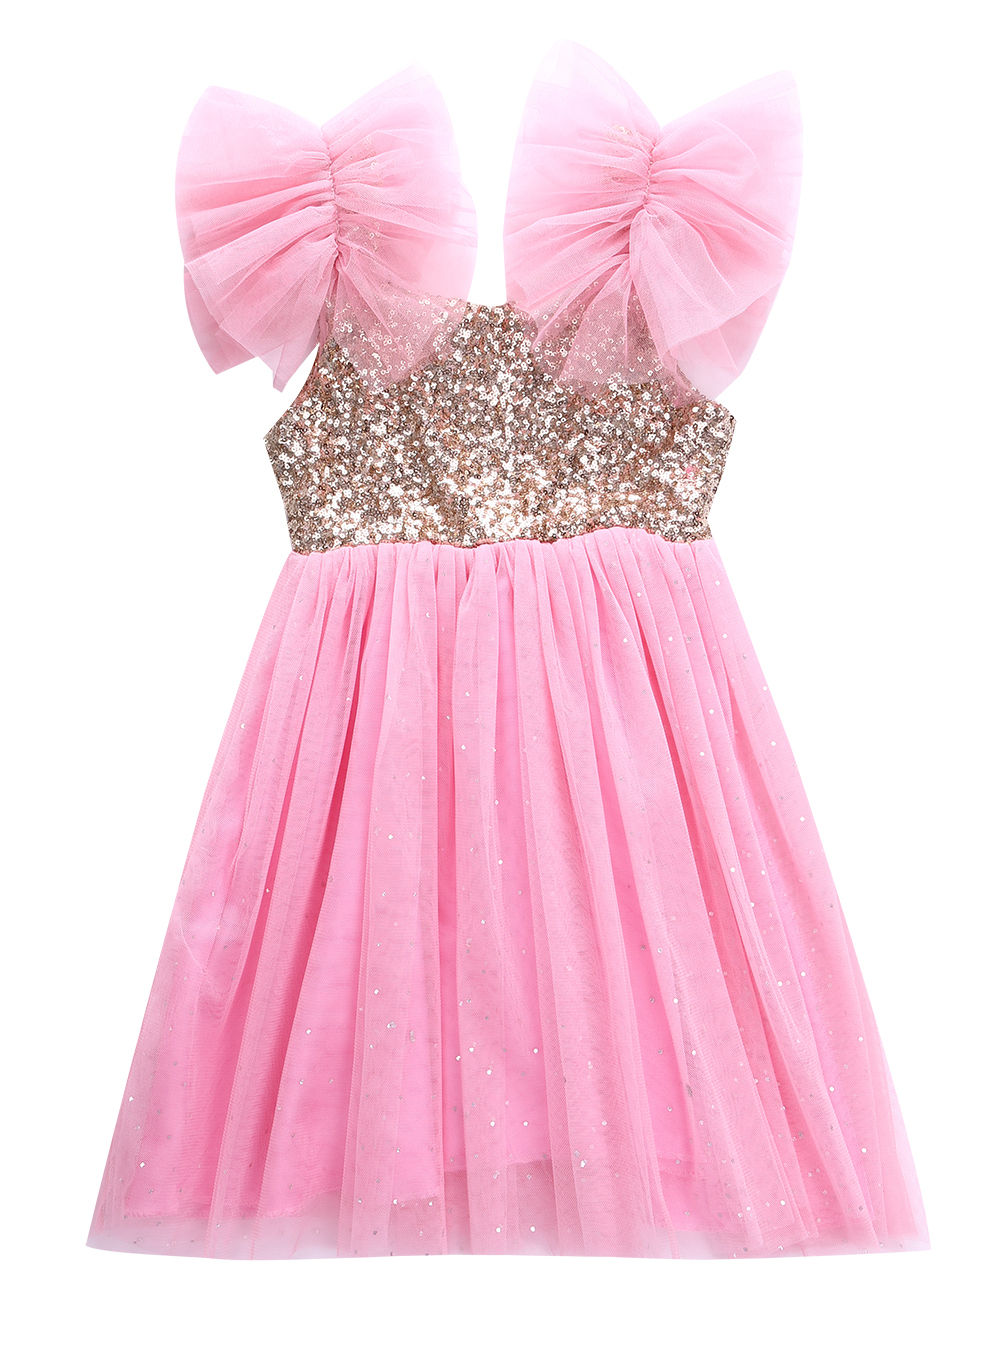 Baby girl pink sequin dress - Baby Girls Kids Girl Pink Sequin Princess Dress Children Baby Girls Clothing Dress Party Tulle Tutu Ball Gown Fancy Dresses2 7y